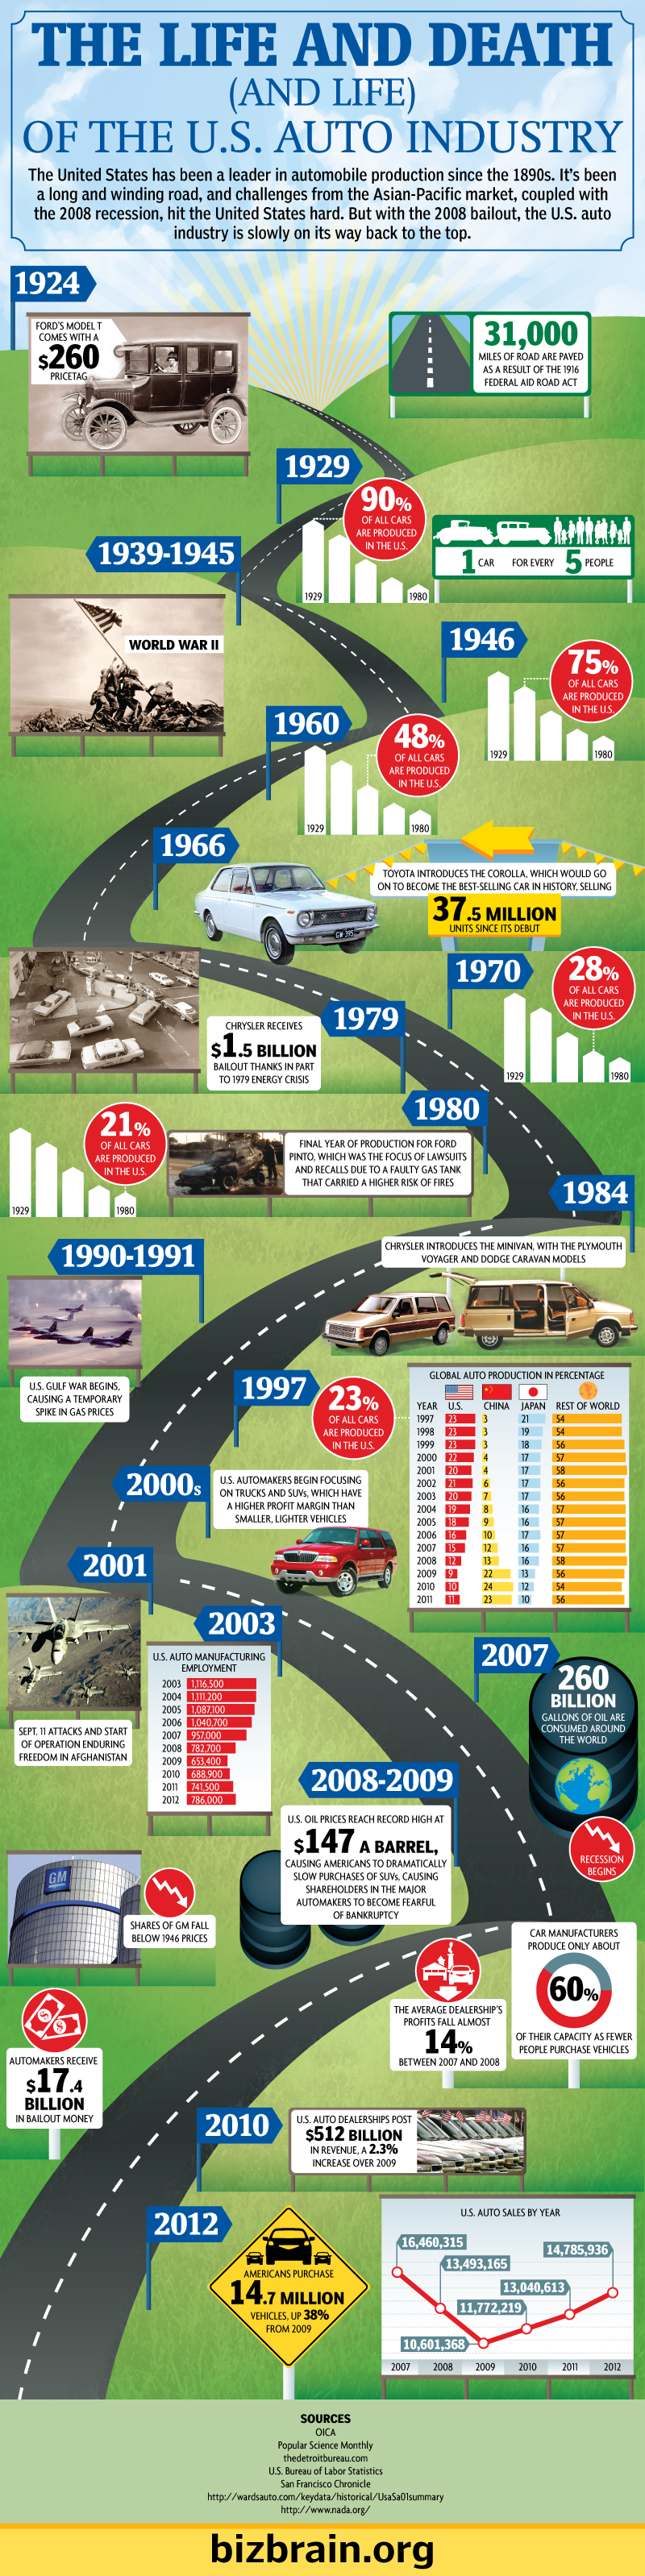 US Auto Industry Timeline